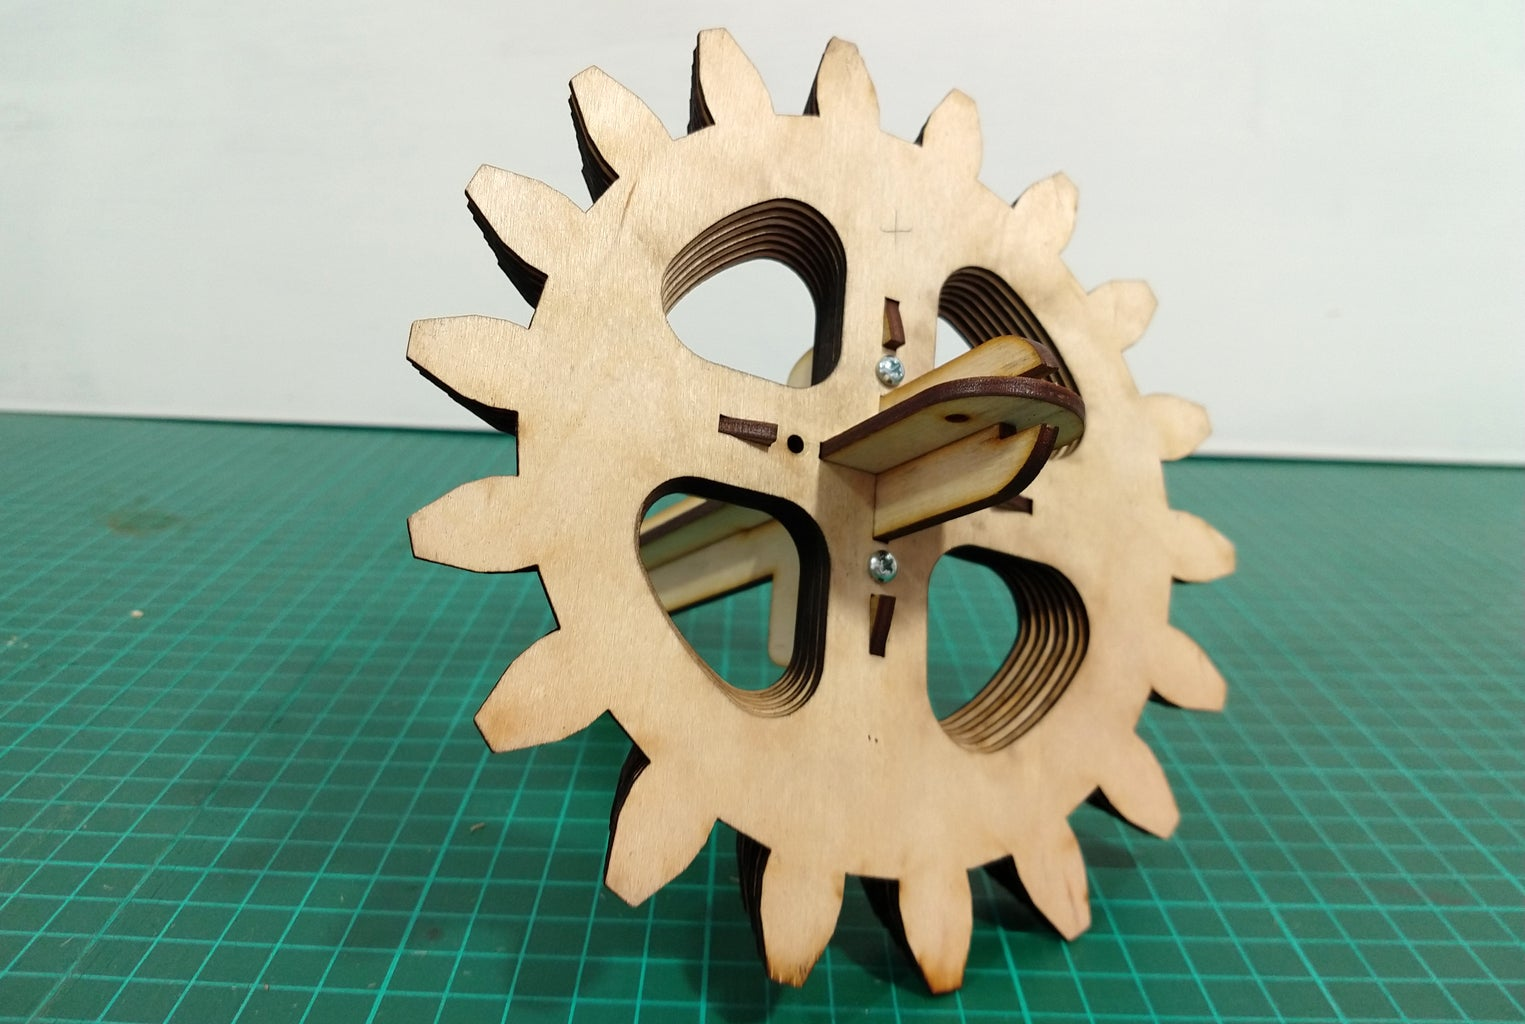 Build the Gears